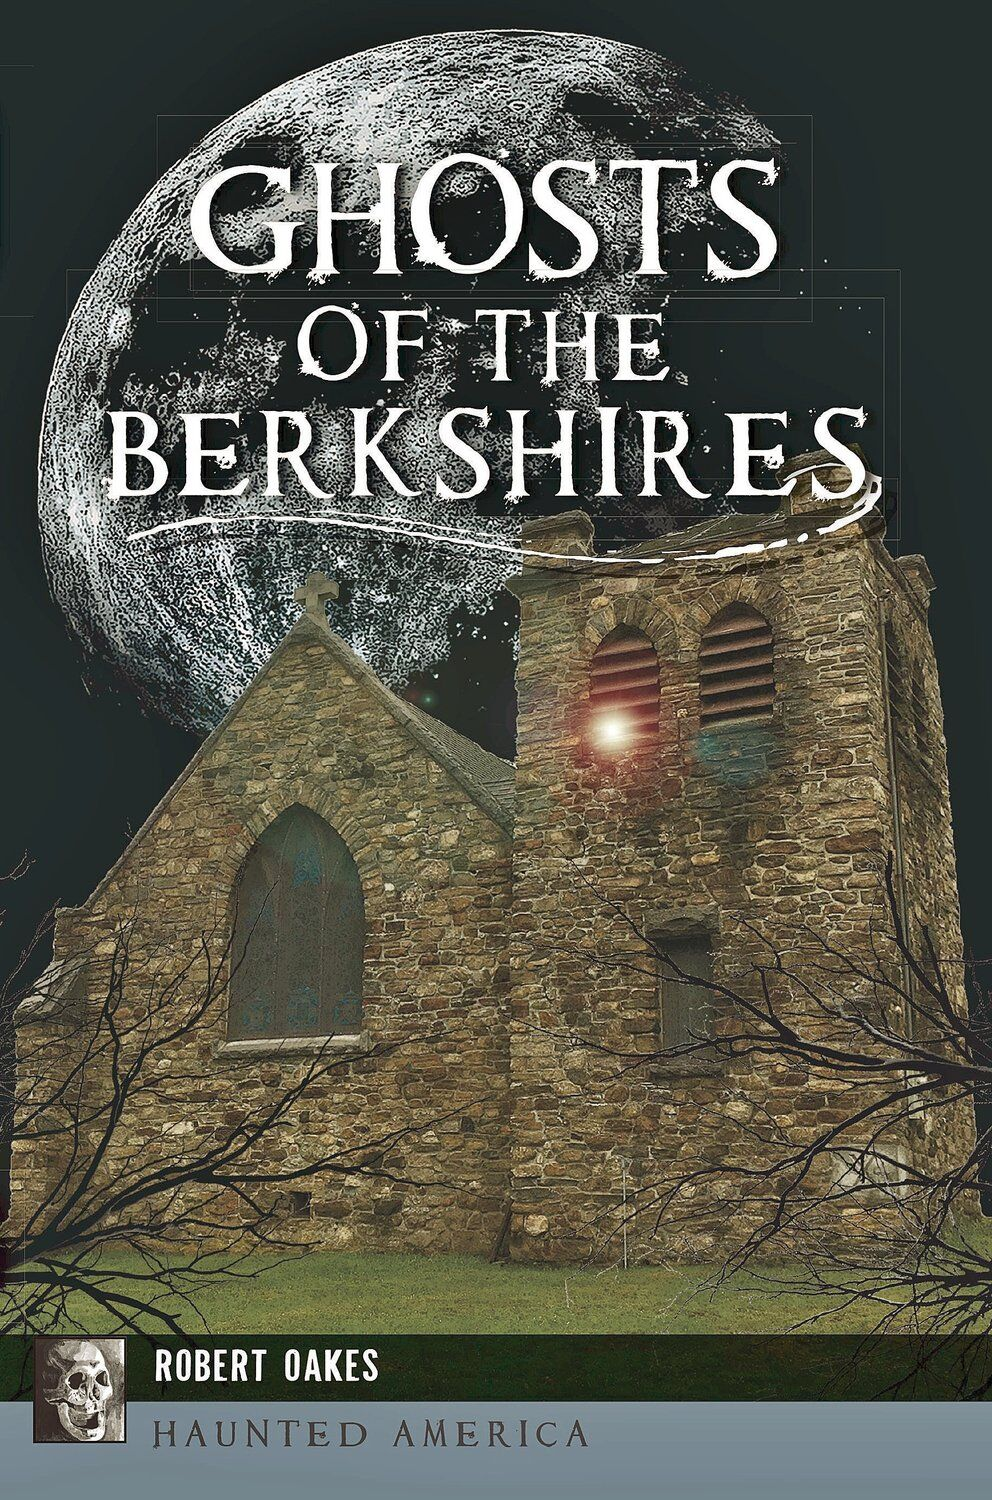 Open Book with Robert Oakes, author of 'Ghosts of the Berkshires' (copy)